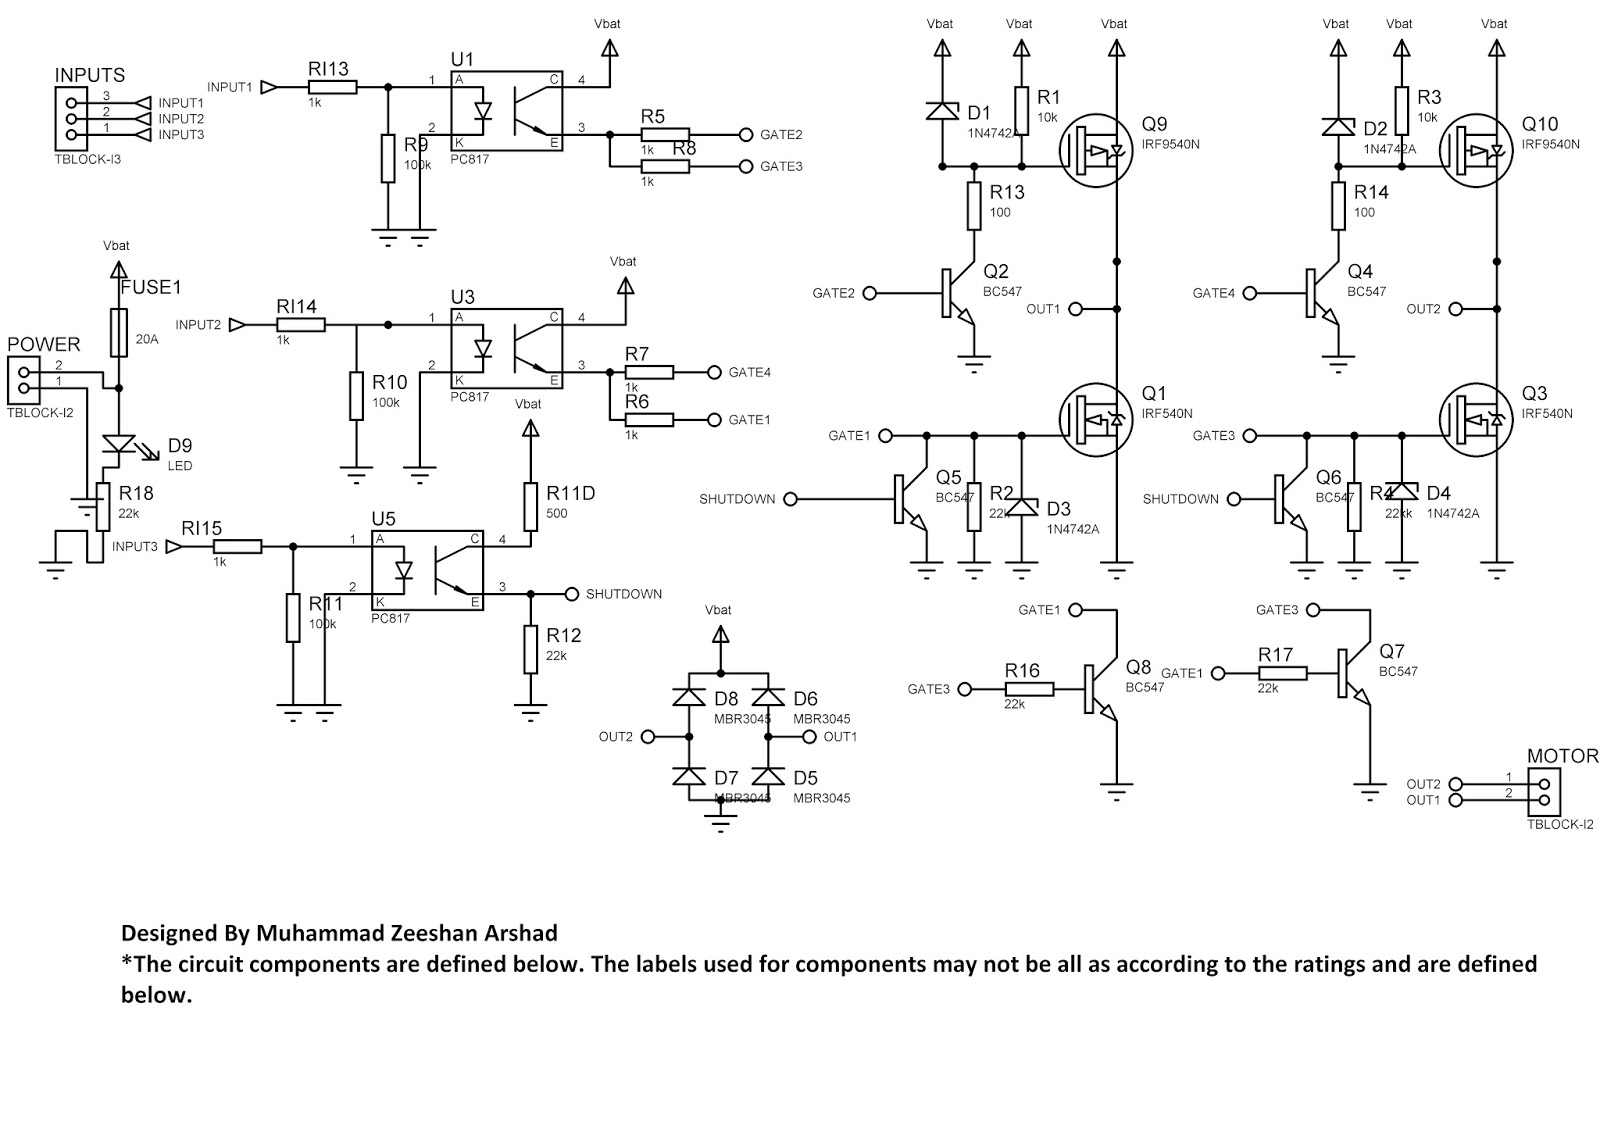 pic microcontroller based line following robot schematics and rh 1ooielab blogspot com